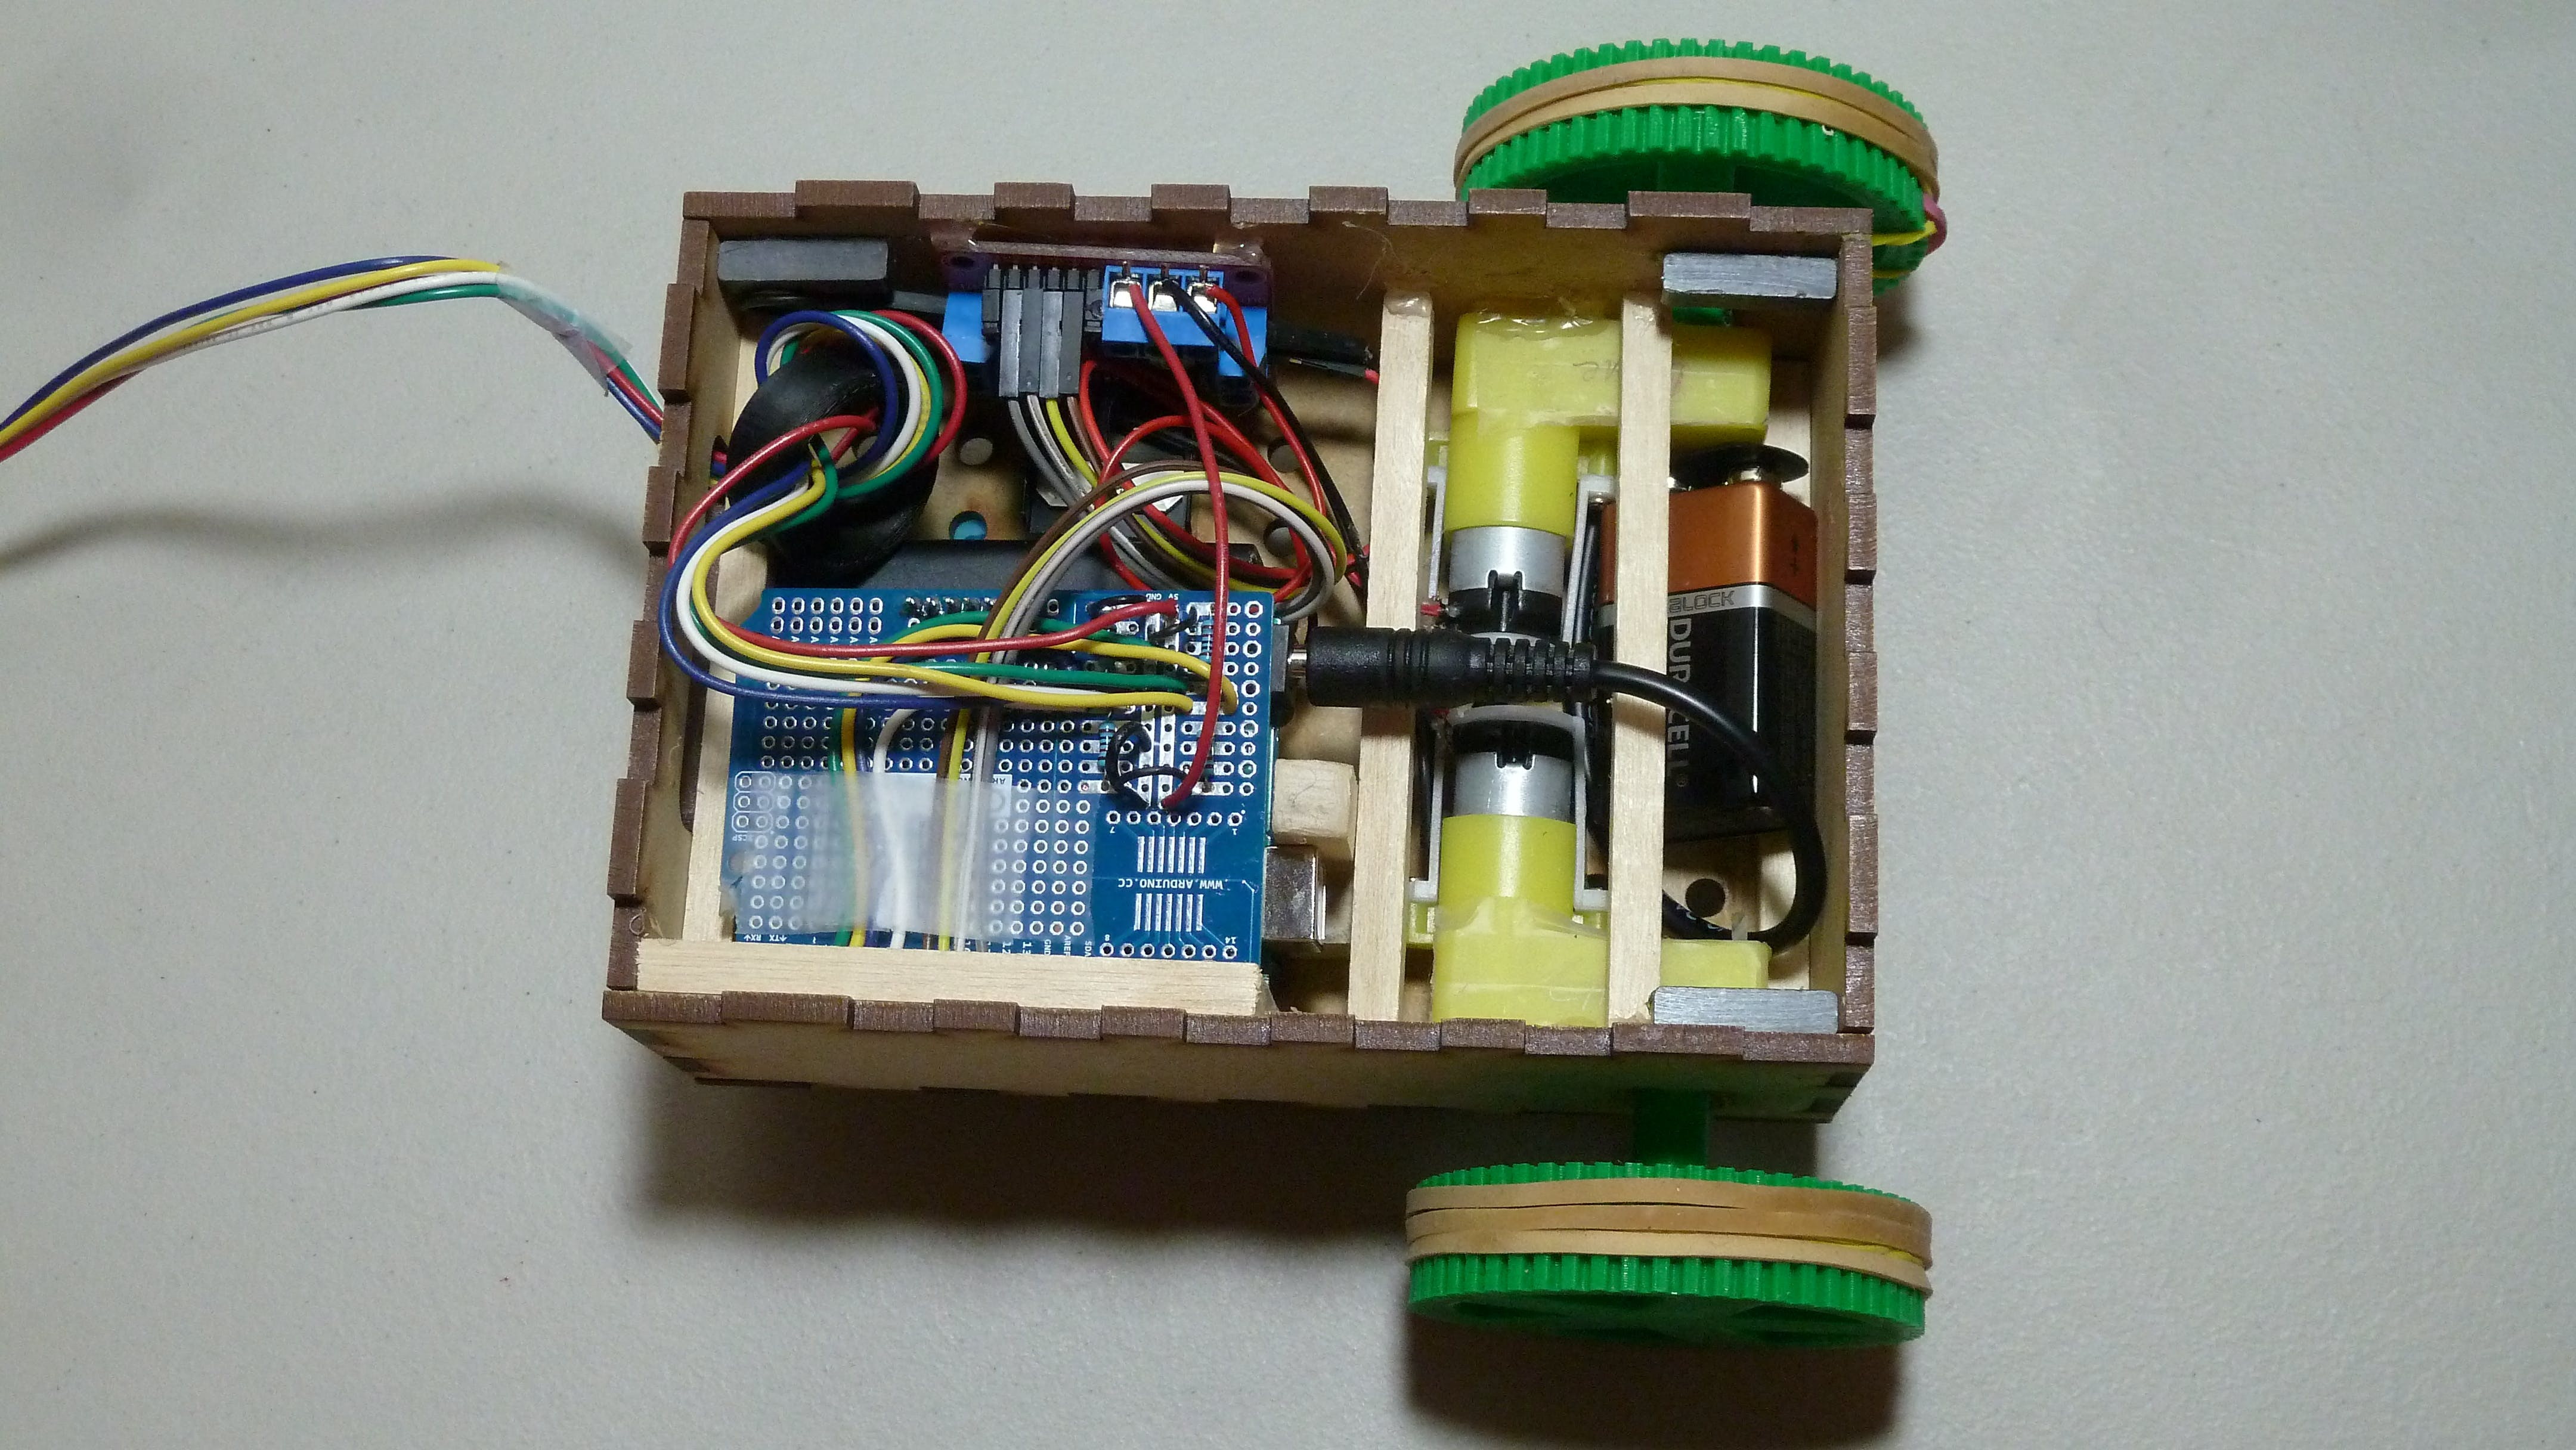 Top-down view of internal components